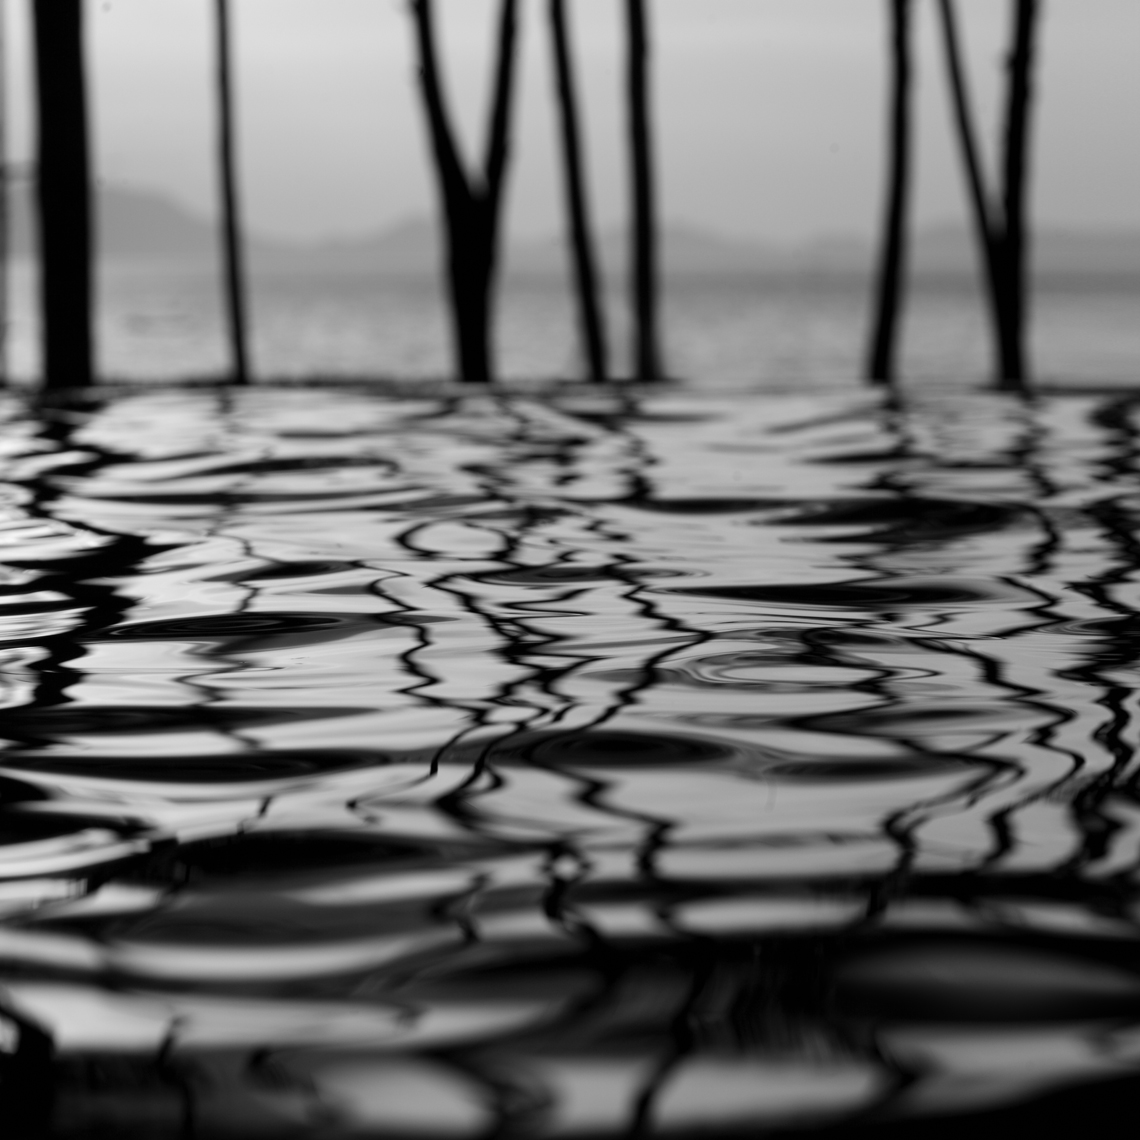 103_Art_SticksAndRipples_E9Y0134_35x35_BW_urbanDigital